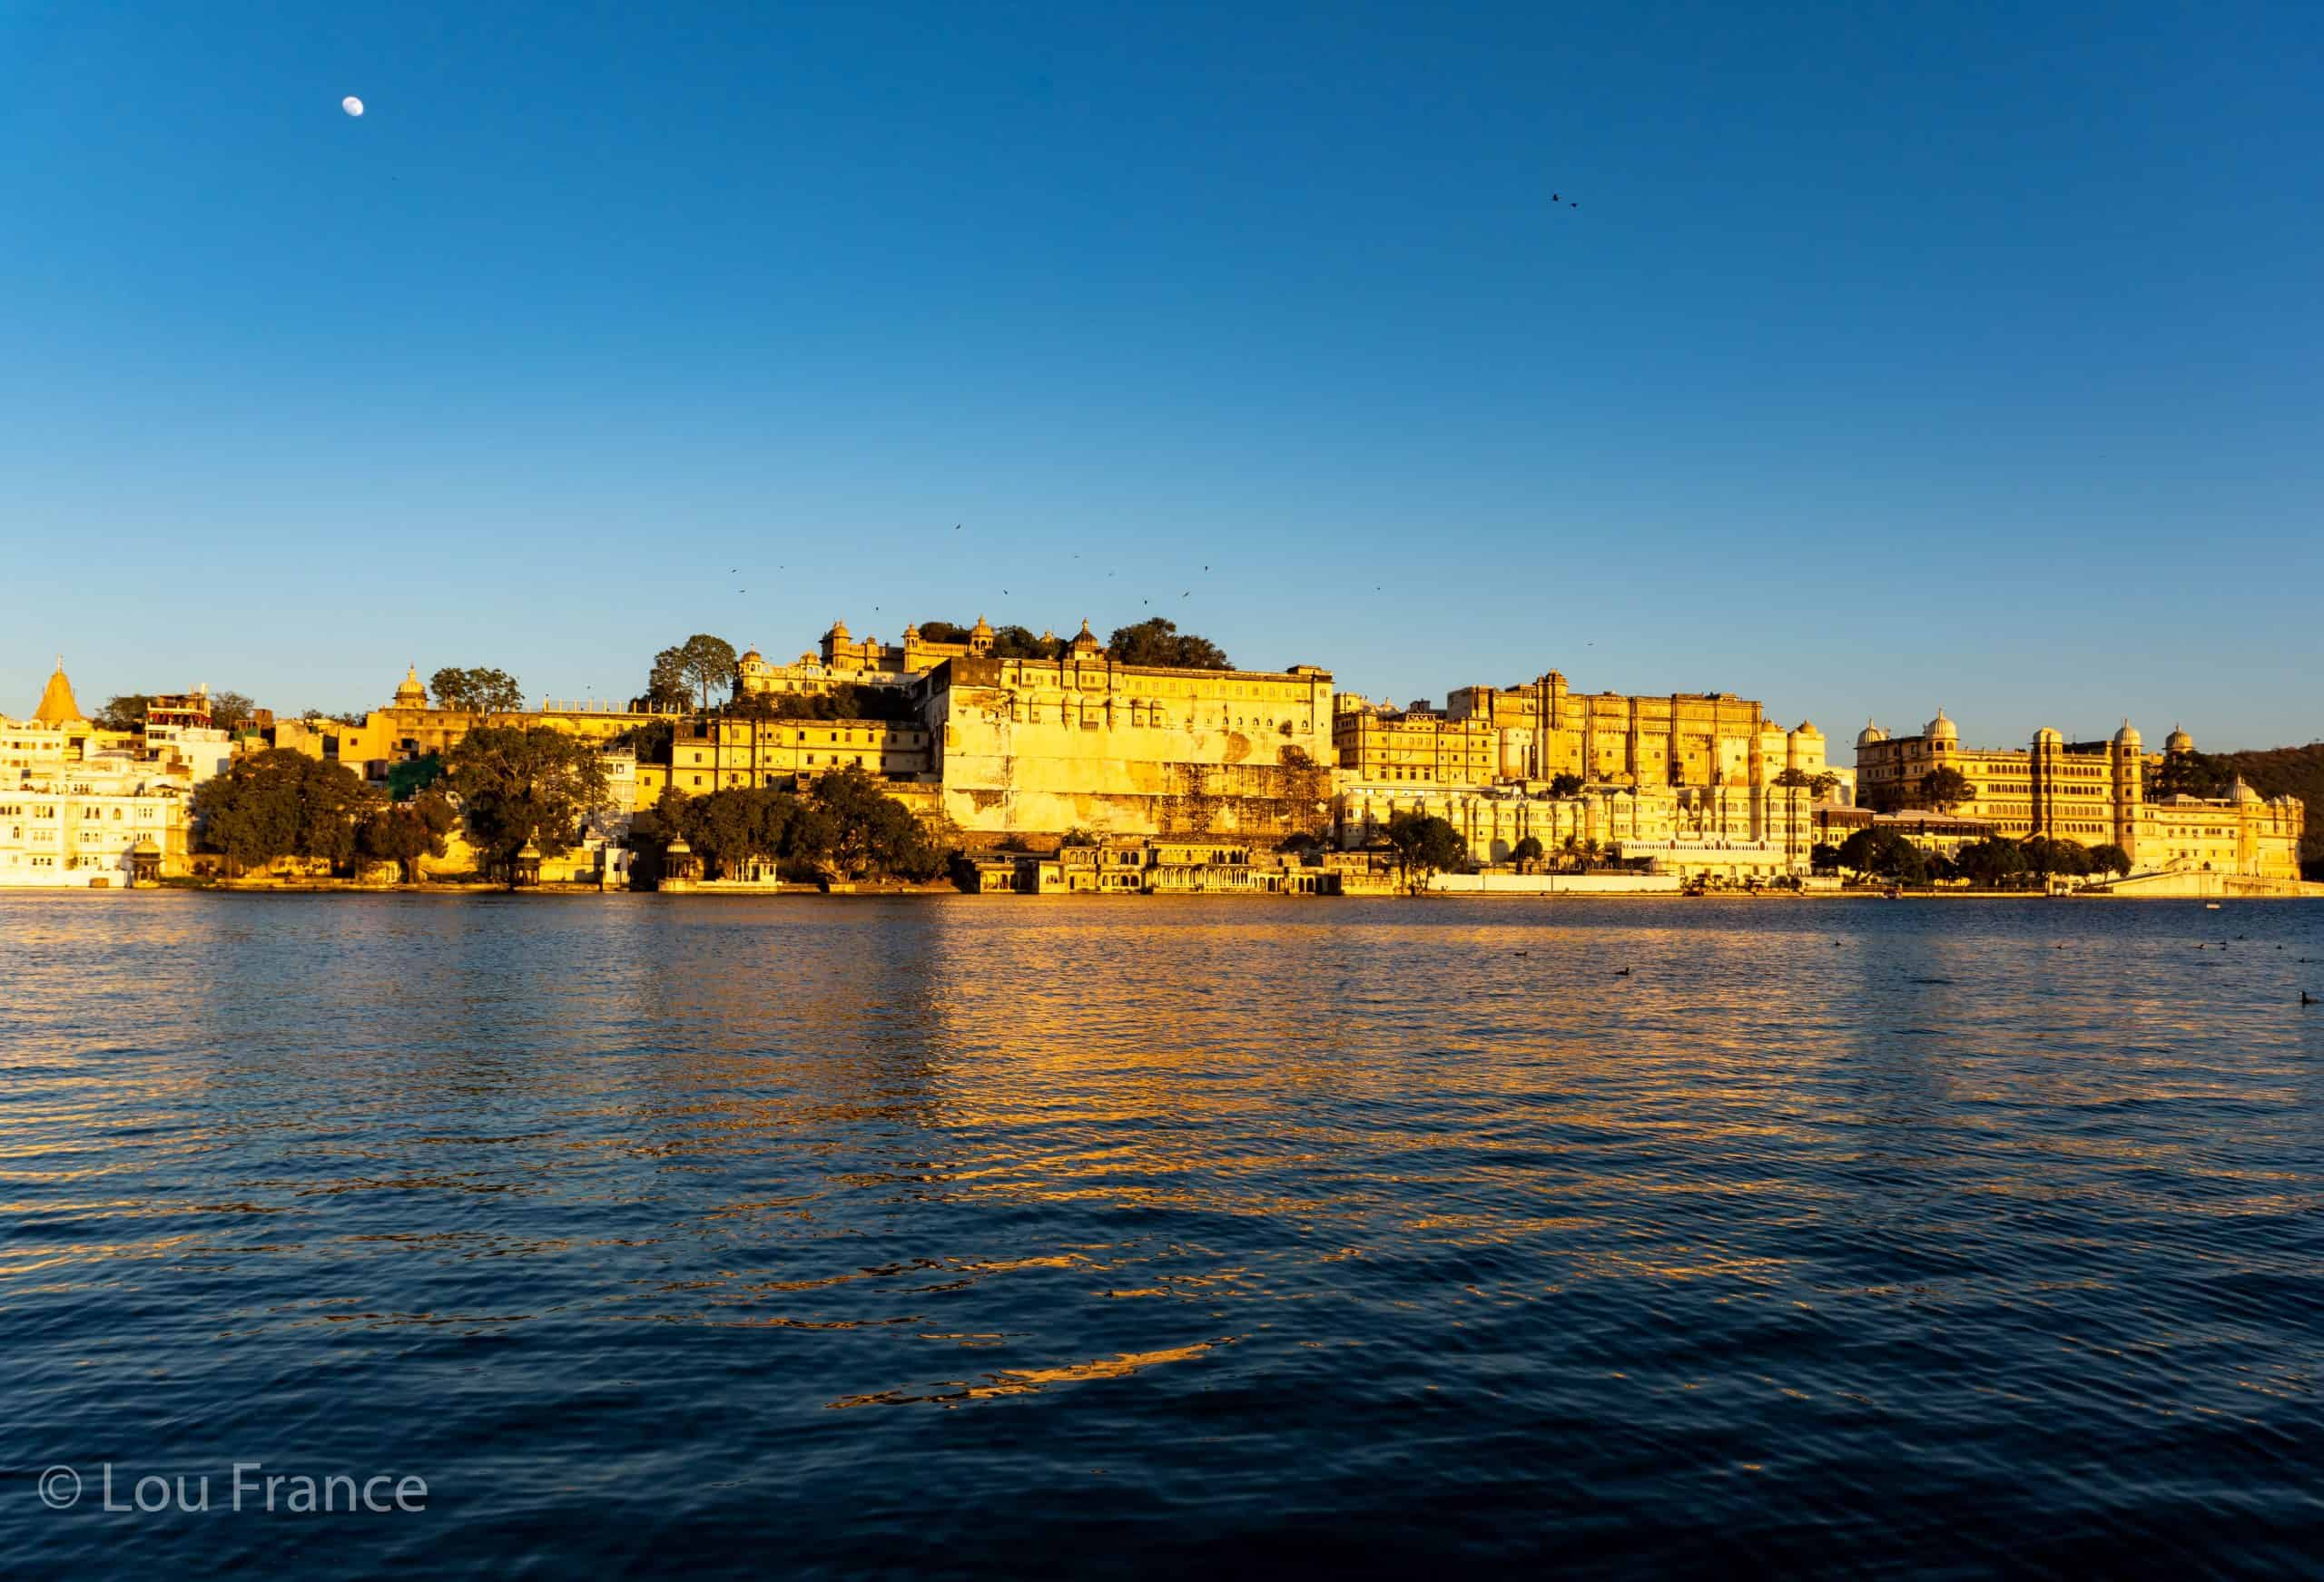 1 Day In Udaipur Itinerary